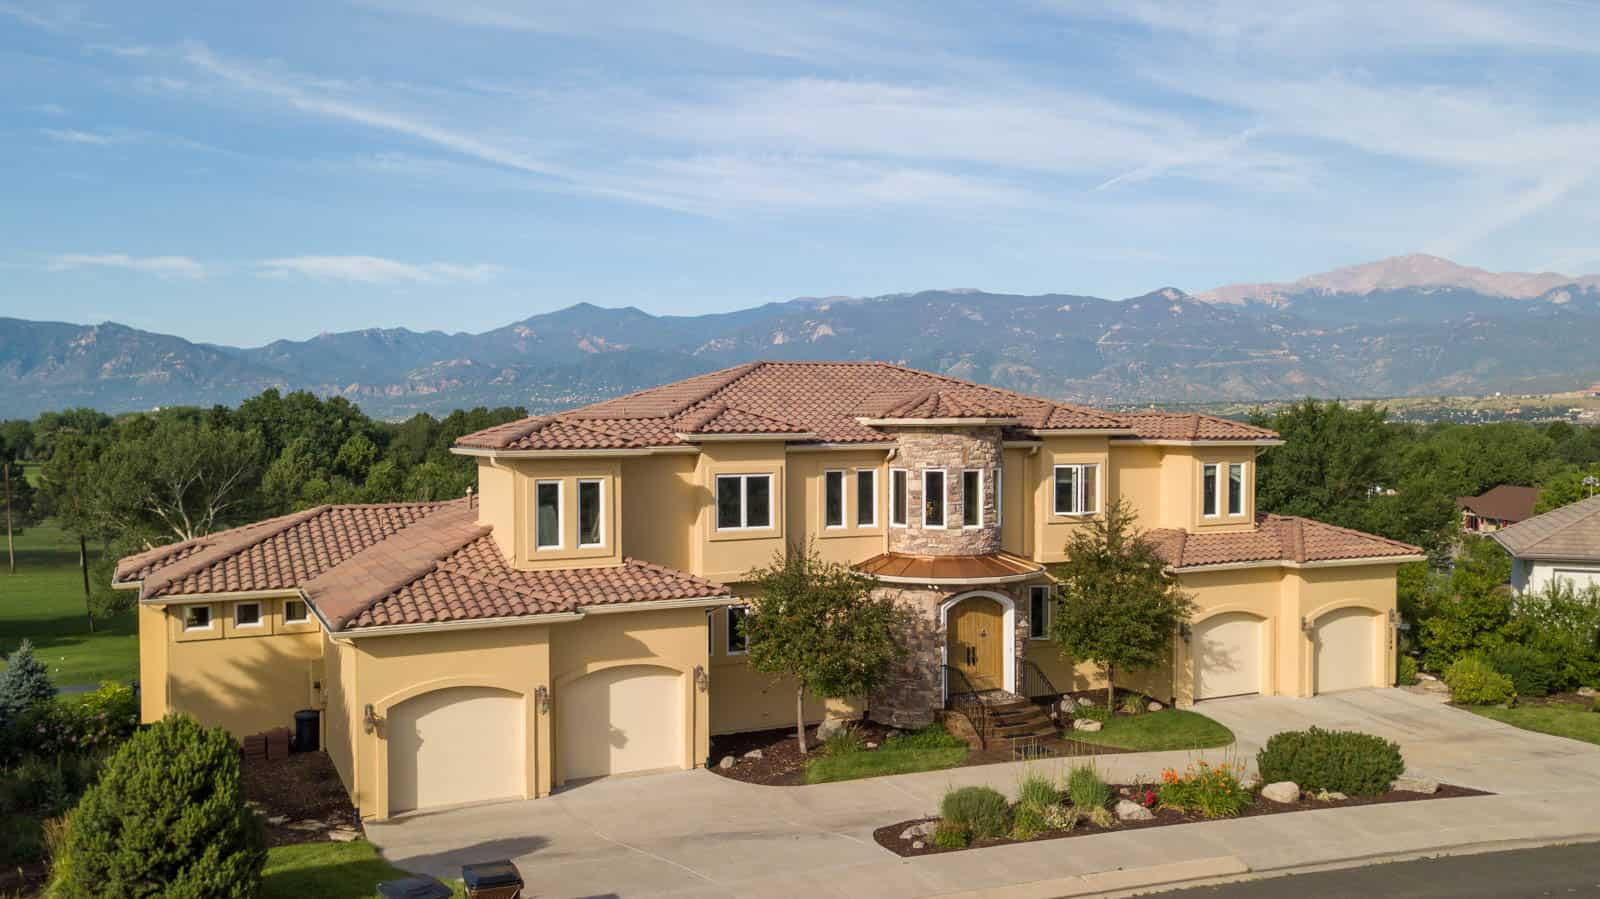 drone photo of luxury home in Colorado Springs, CO